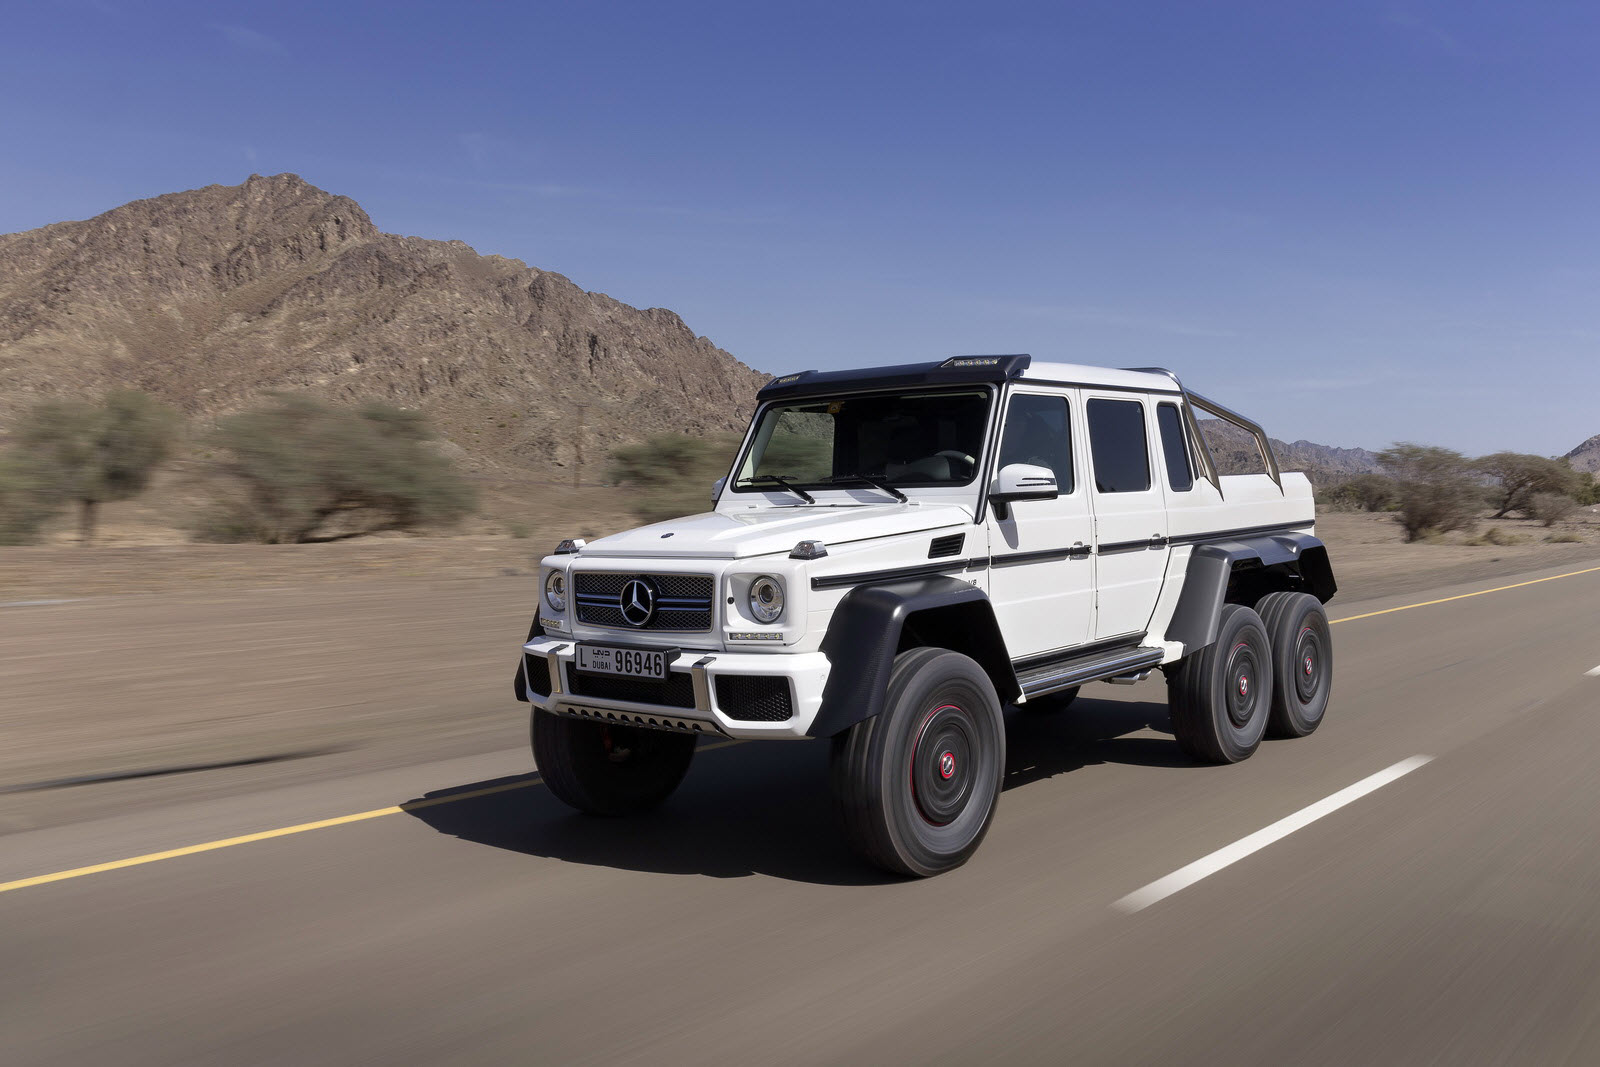 Mercedes benz g 63 amg 6x6 taking the desert by storm for Mercedes benz g 63